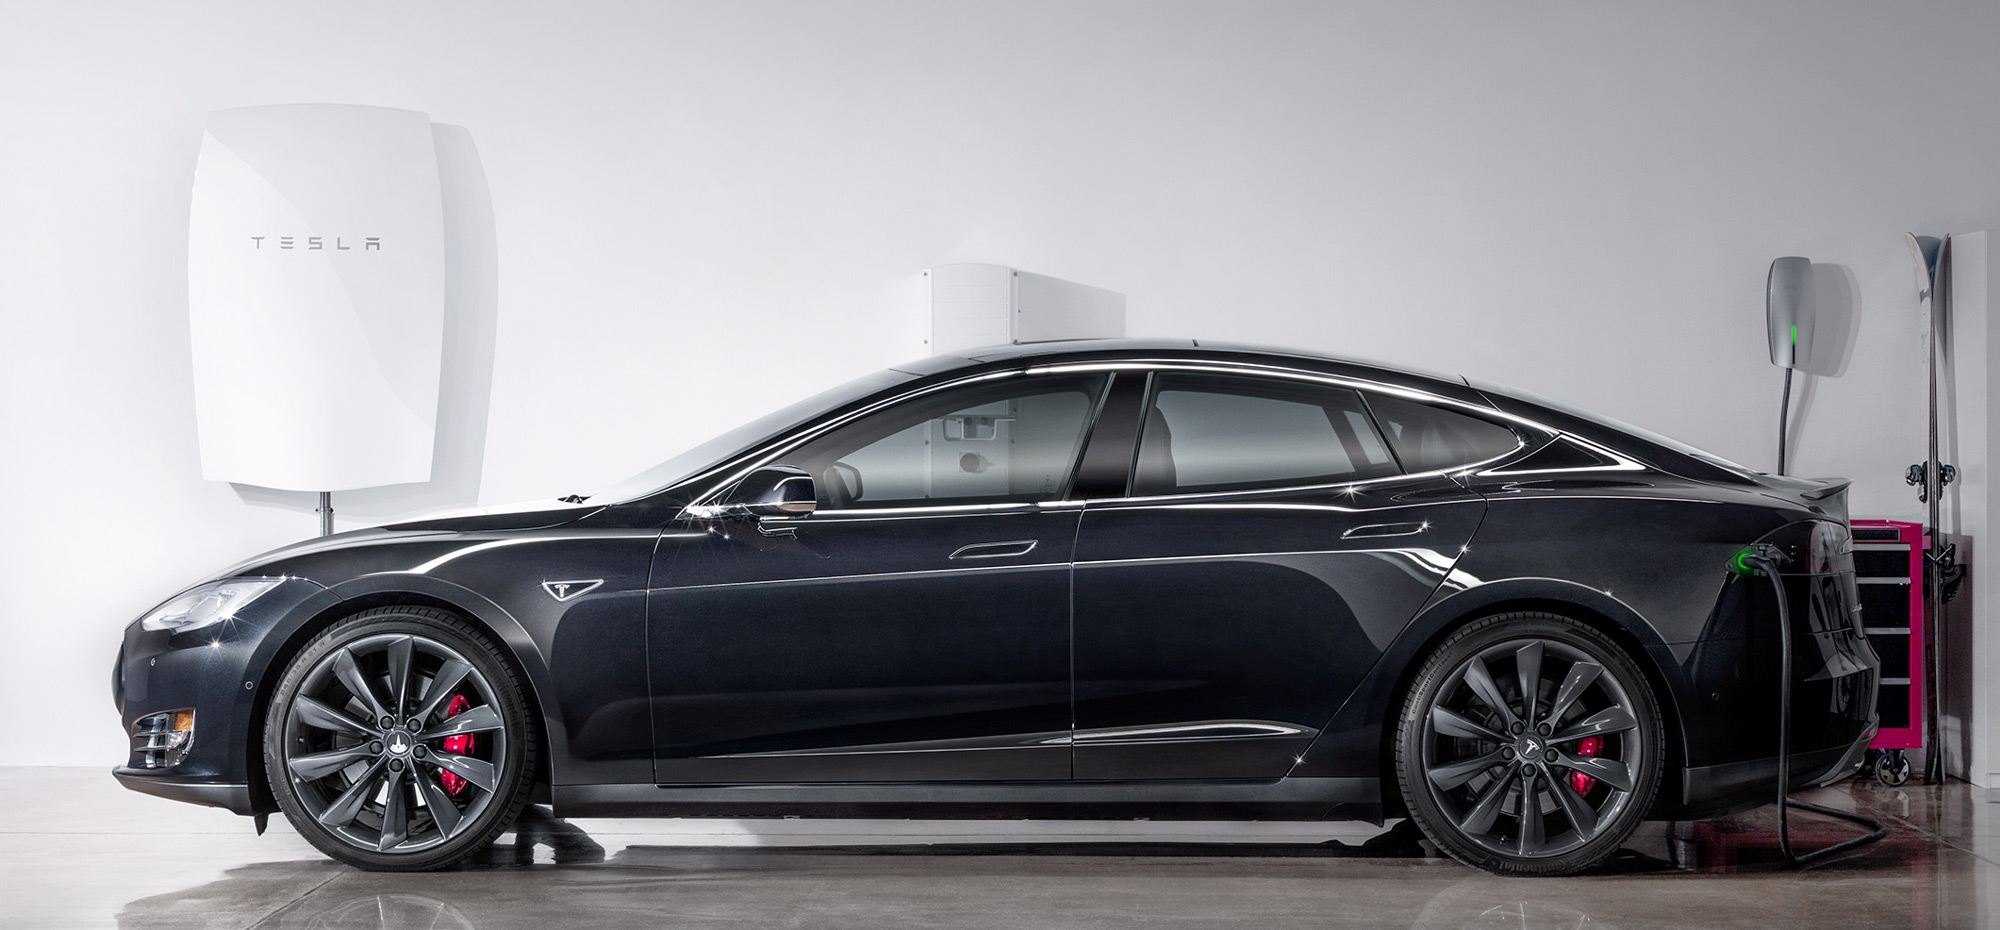 Tesla Energy: What We Learned About Powerwall Demand On Q1 Results Call